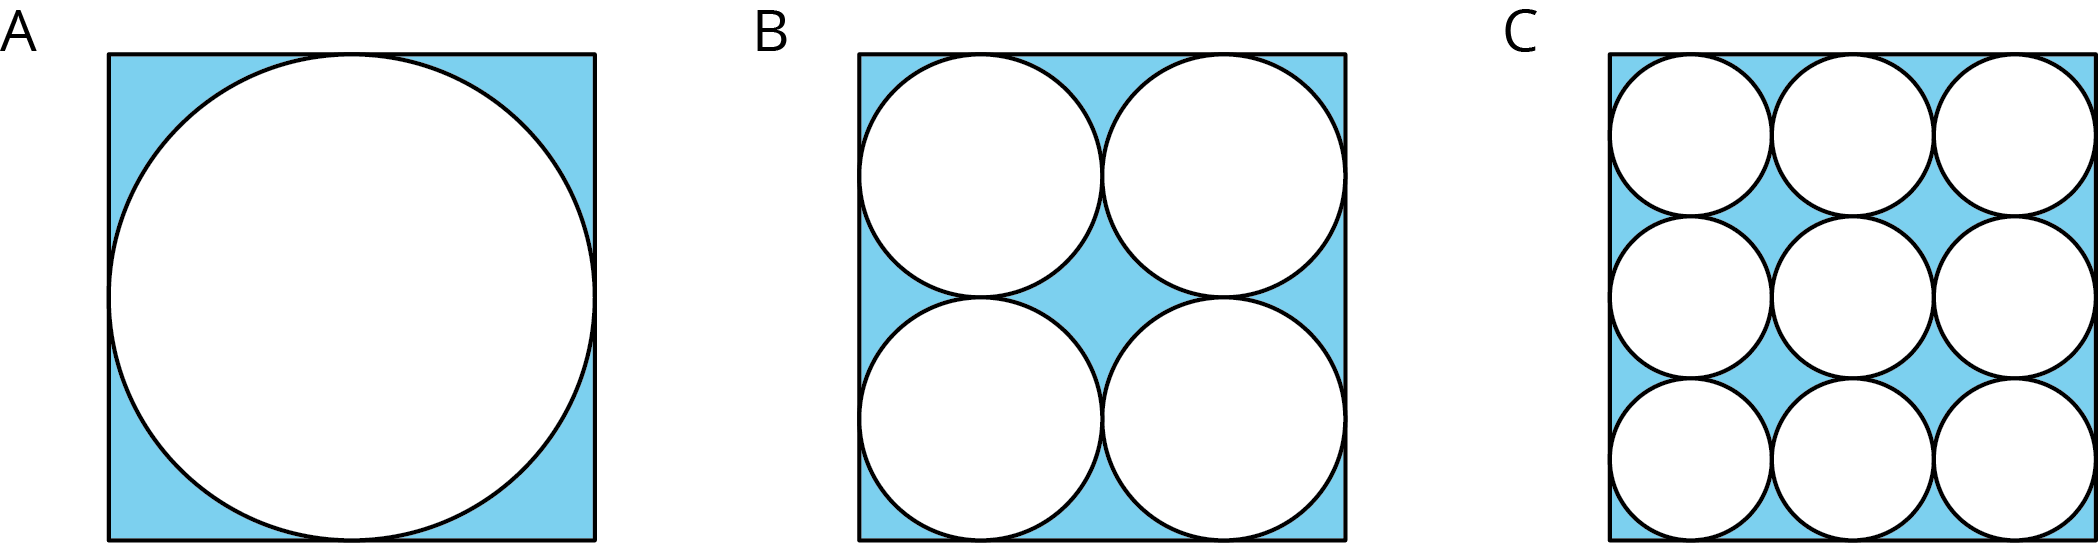 Three equal sized figures labeled A B and C. Figure A is a square with a circle inside of it where the circle touches the midpoint of each side of the square. The regions outside of the circle are shaded blue. Figure B is a square with four identical circles inside of it that do not overlap. The circles are arranged in two rows of two circles, are tangent to each other and tangent to the sides of the square. The area outside of the circles is shaded blue. Figure C is a square with nine identical circles inside of it that do not overlap. The circles are arranged in three rows of three circles, are tangent to each other and to the sides of the square. The area outside of the circles is shaded blue.